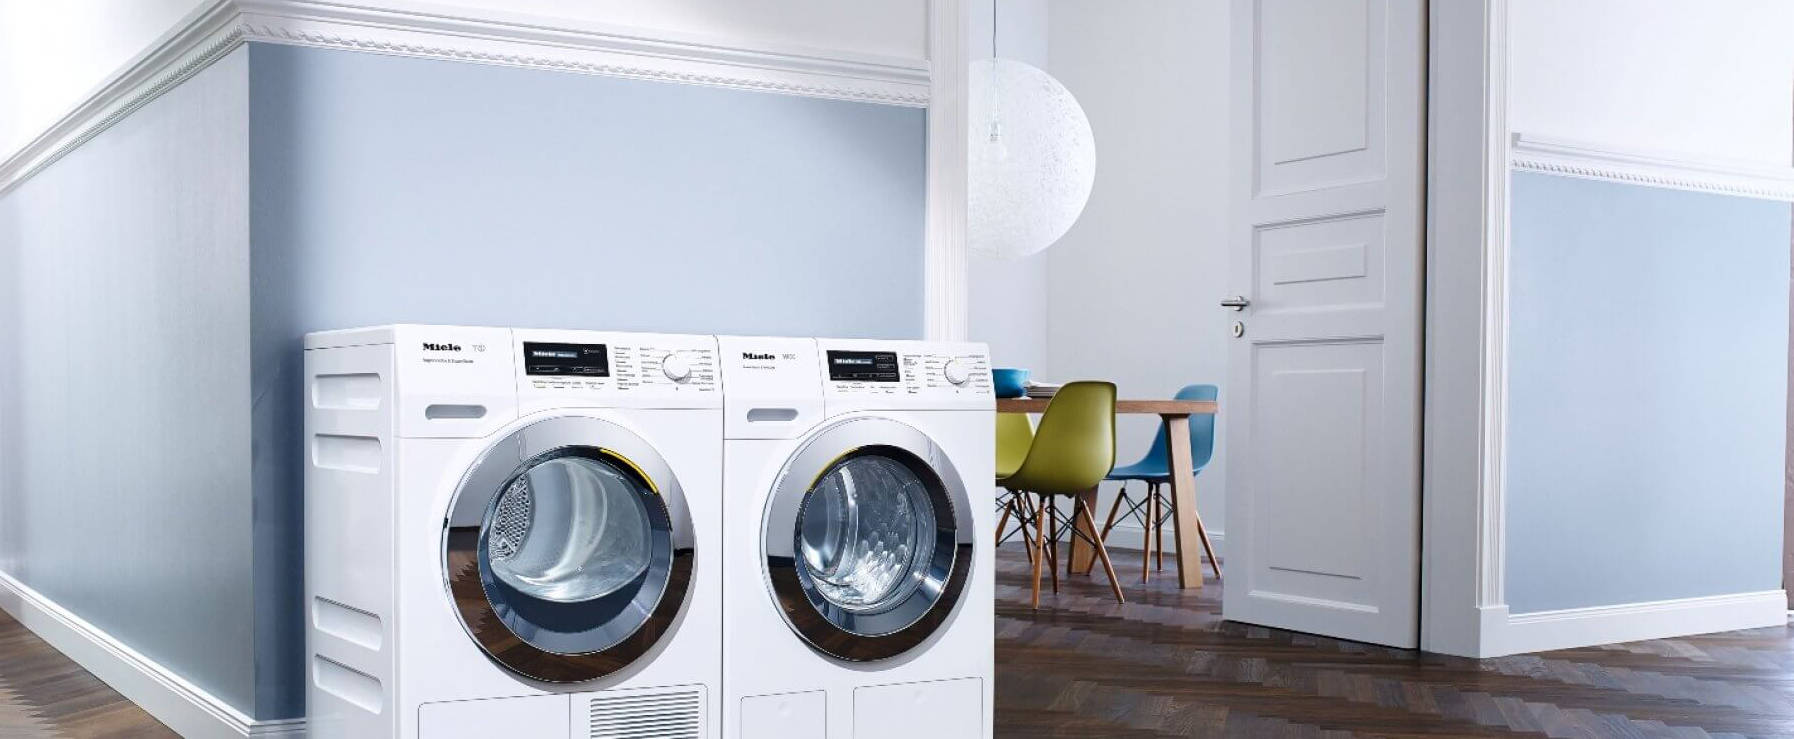 miele-cyprus-tumble-dryers